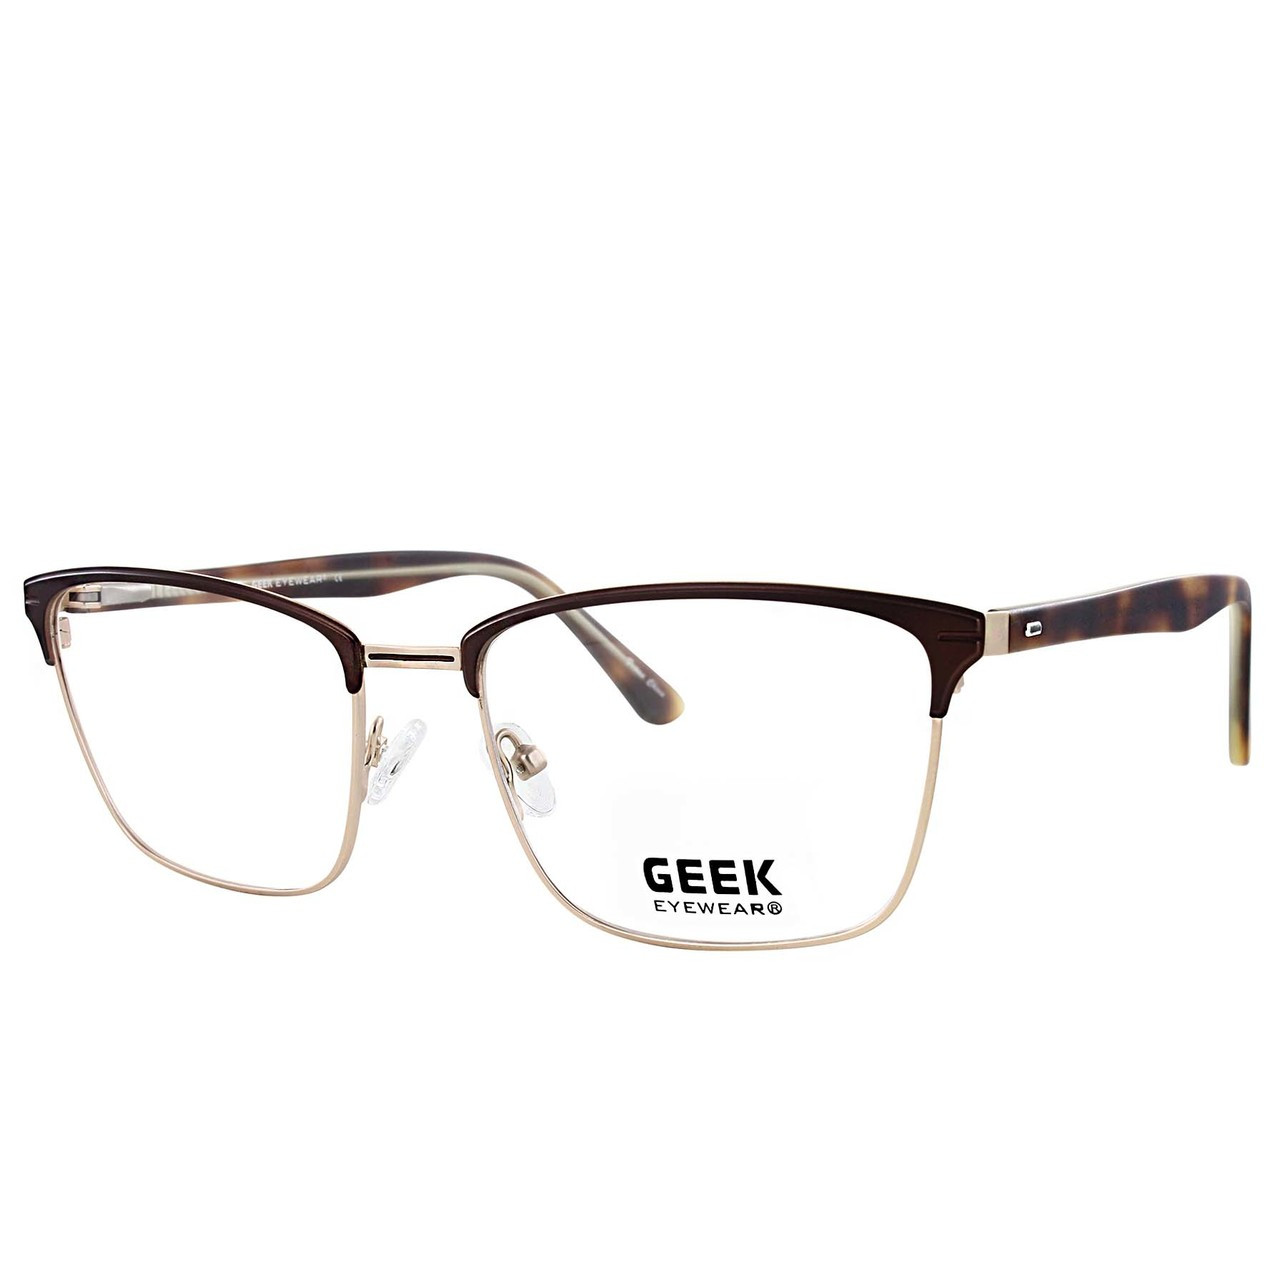 GEEK Eyewear GEEK JAZZ